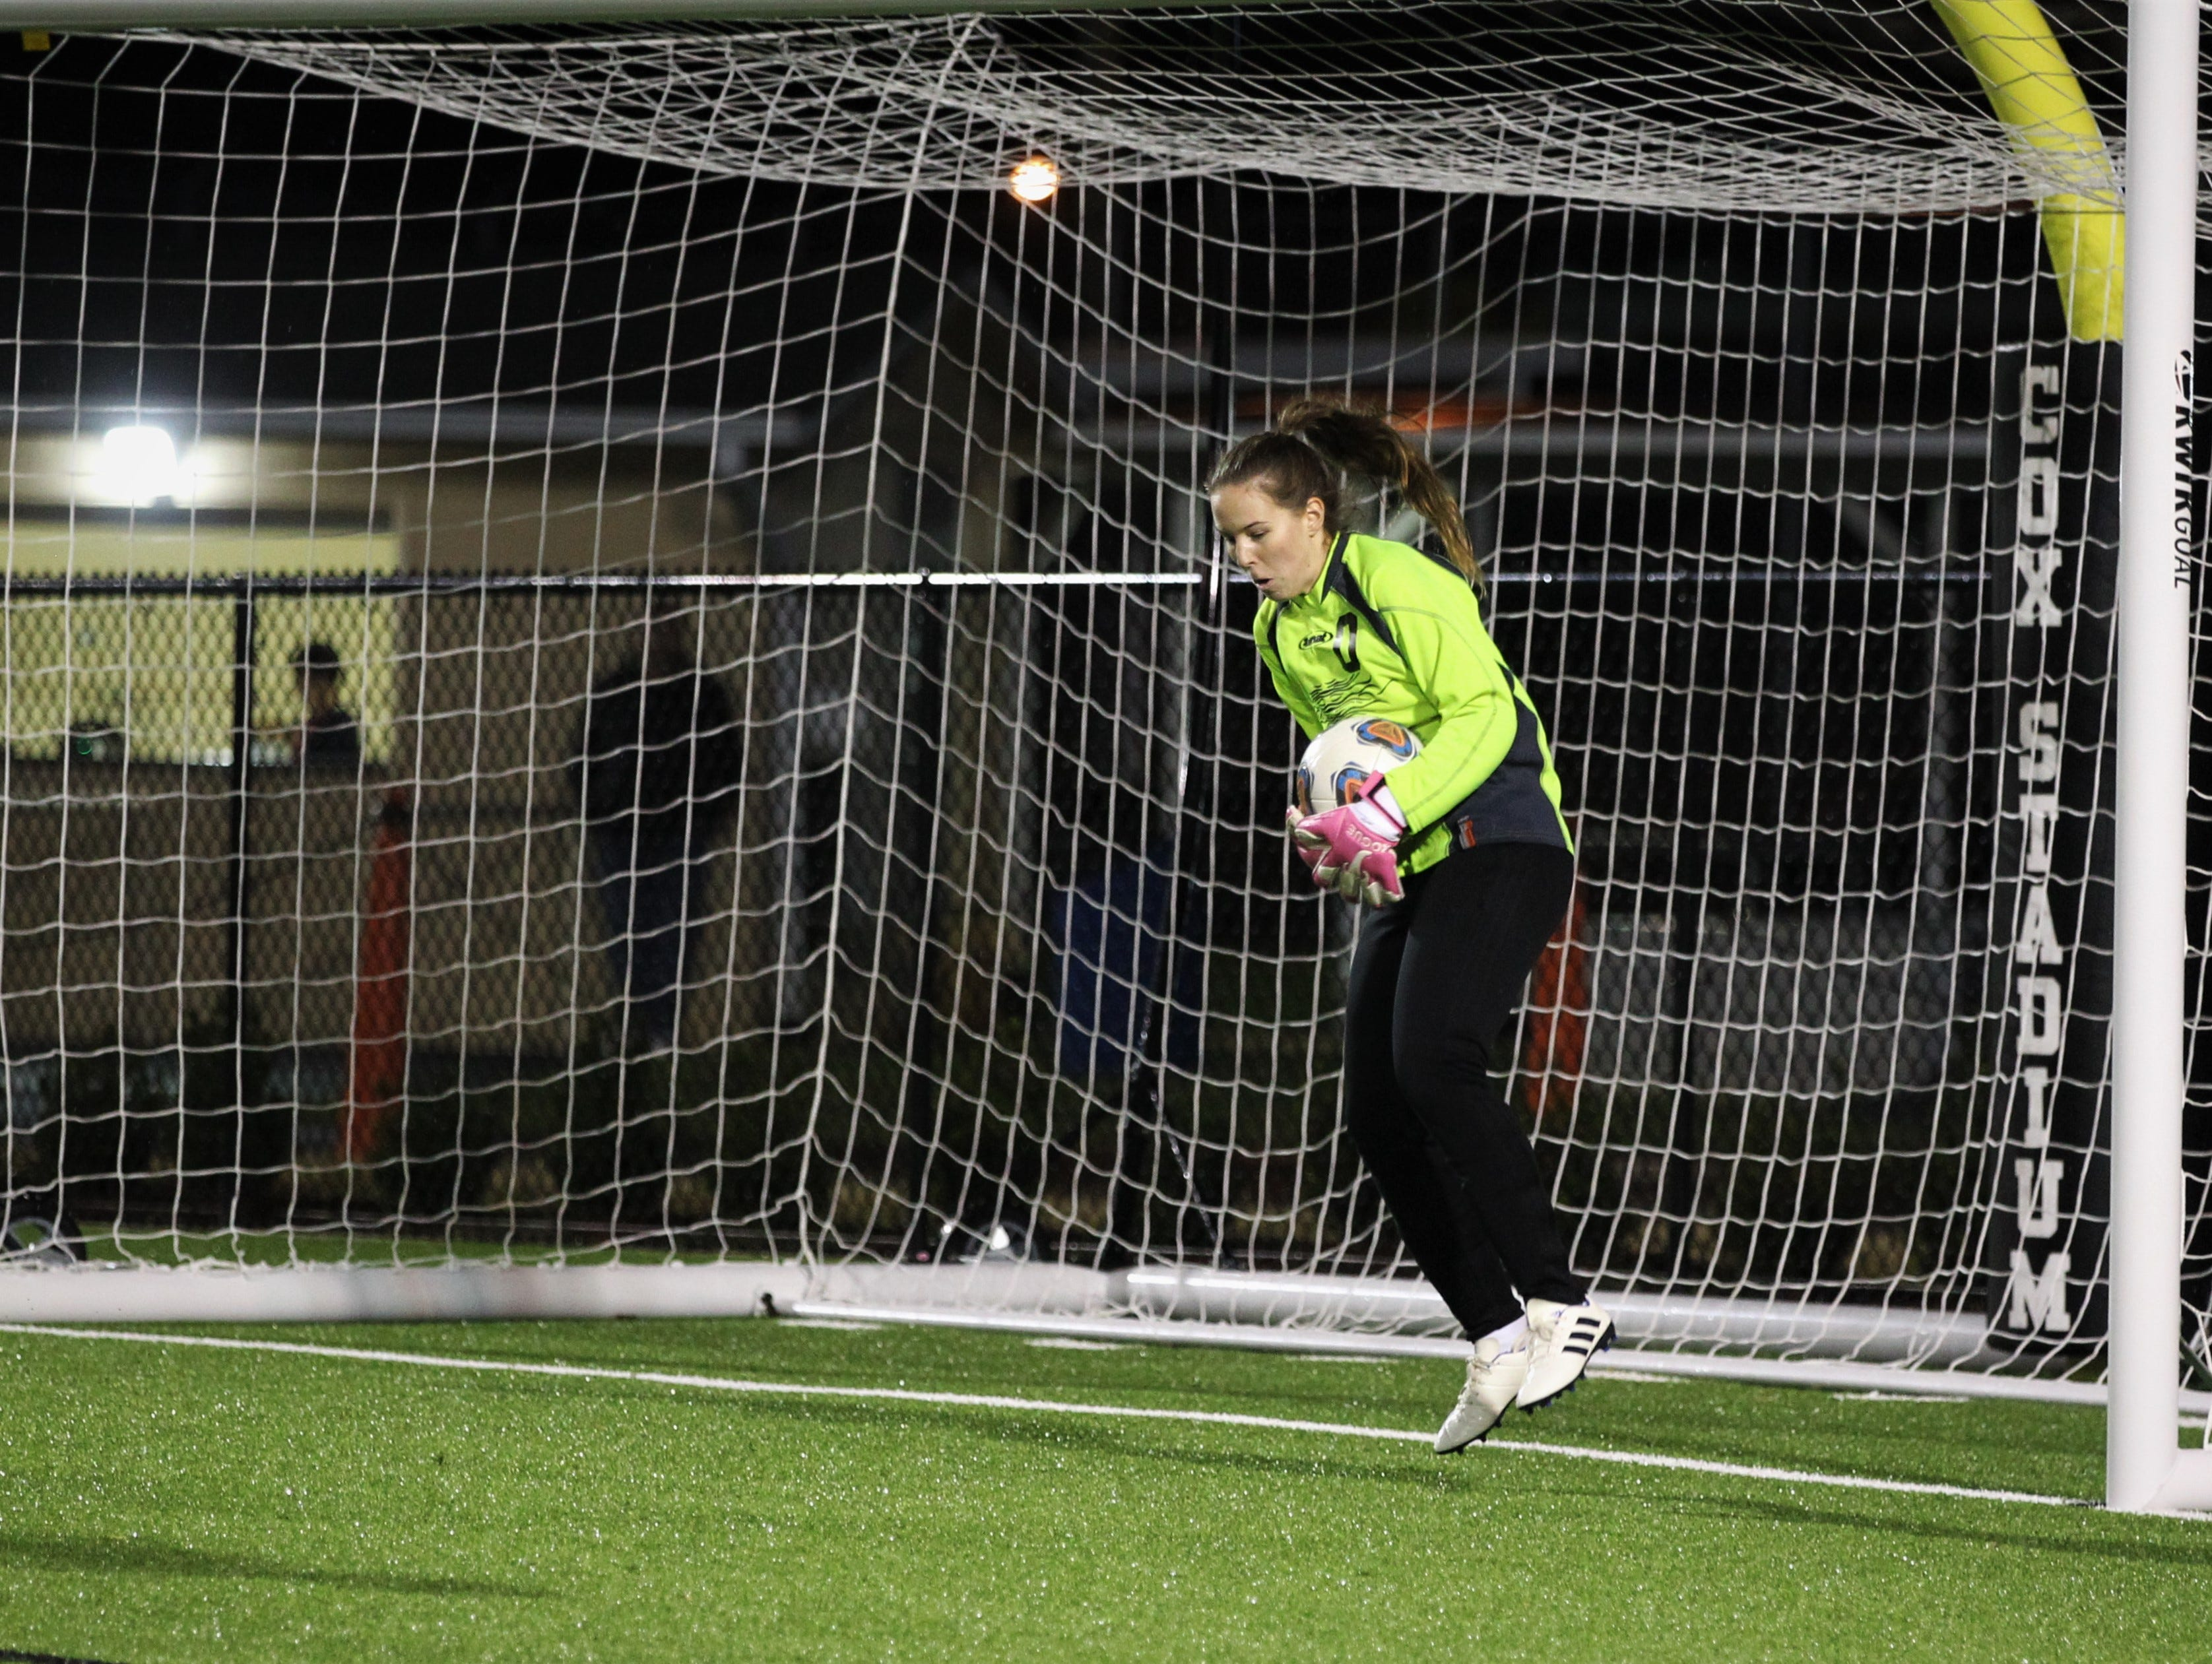 Leon keeper Pamela Moore saves a bouncing shot as Leon's girls soccer team beat Lincoln 2-1 in the District 2-4A championship on Feb. 1, 2019.